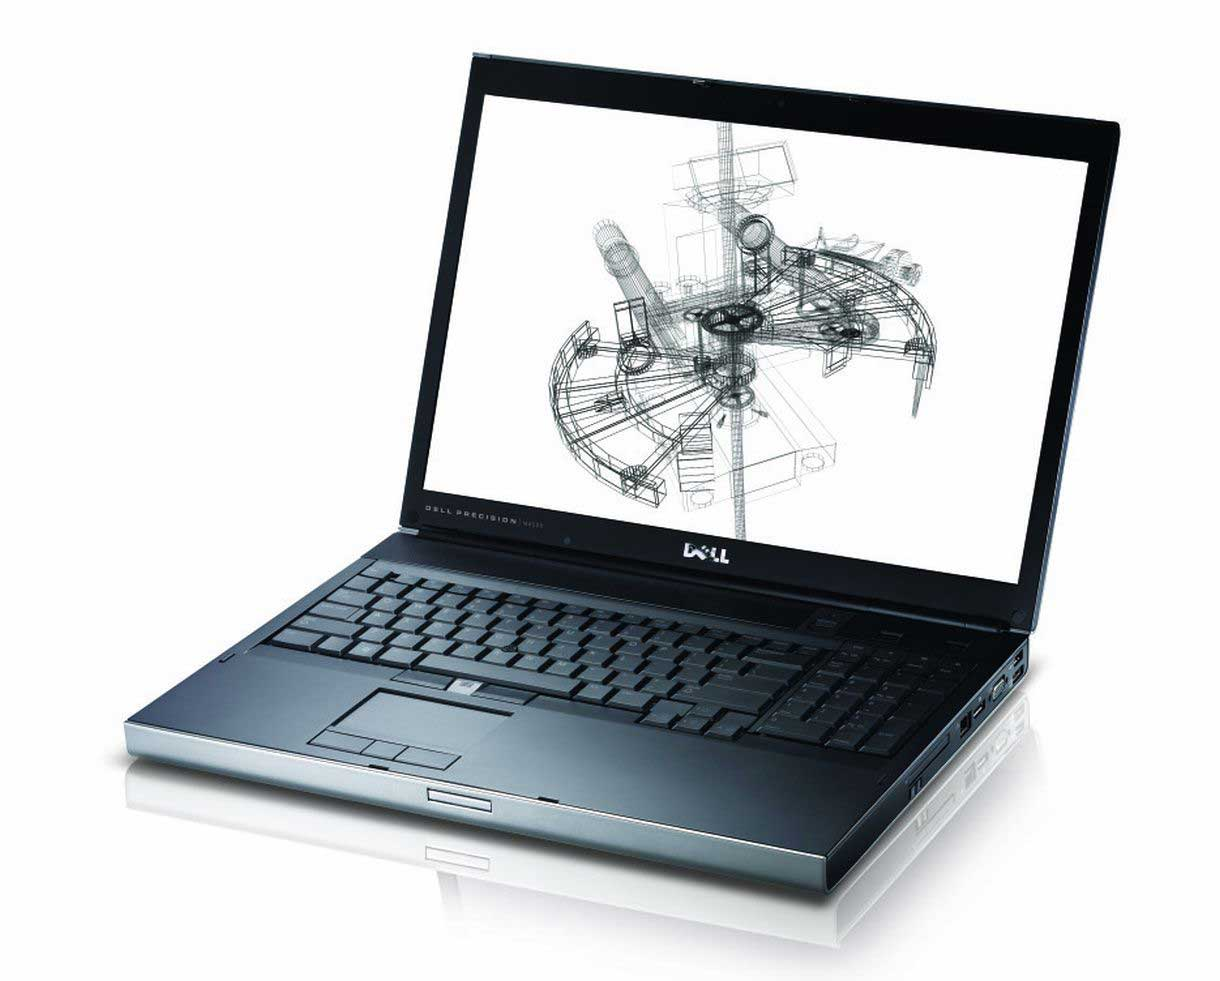 Dell Precision M6500 Best Laptop Workstation